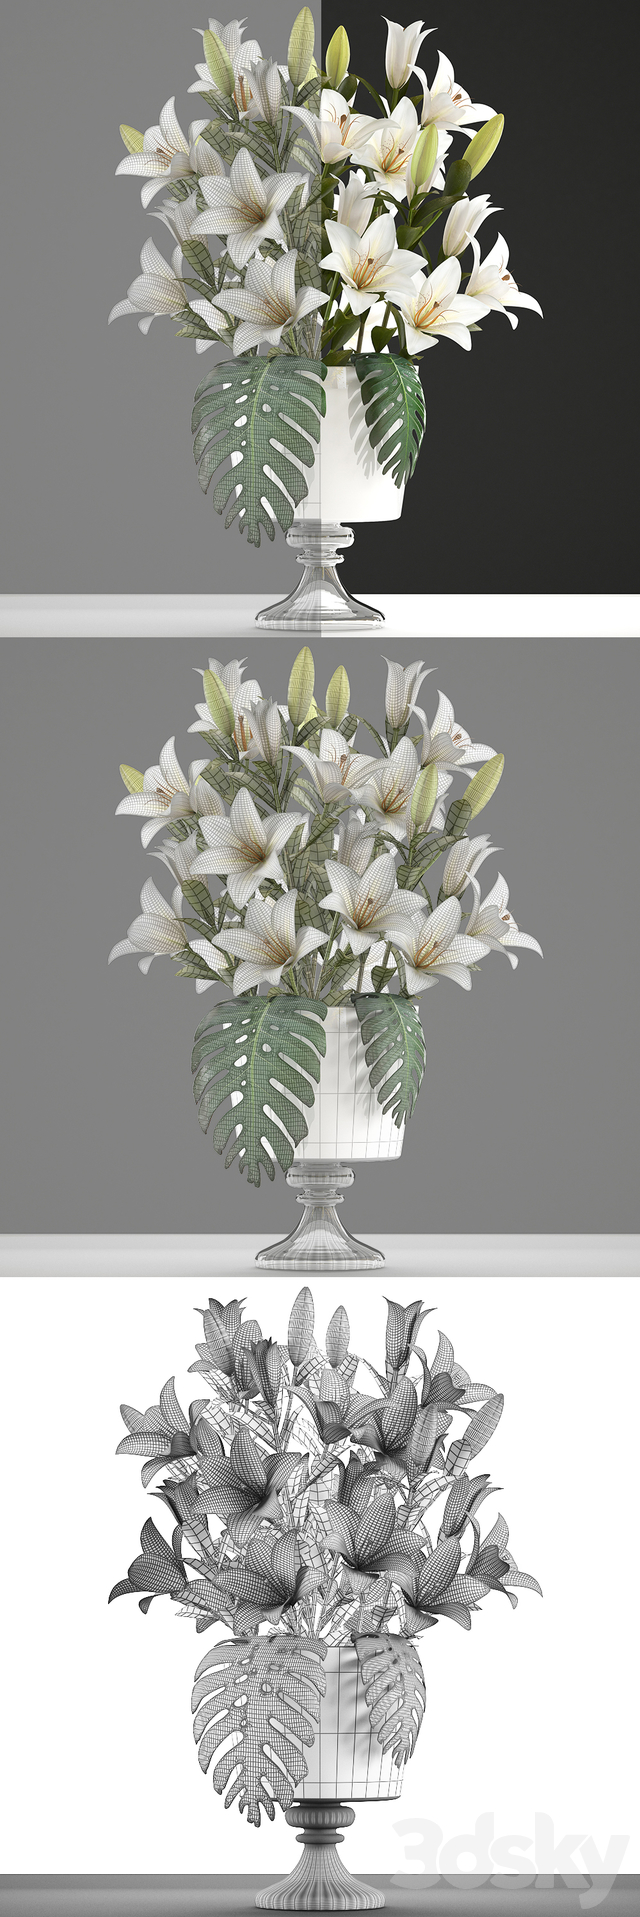 Collection of flowers 51. Bouquet of lilies.